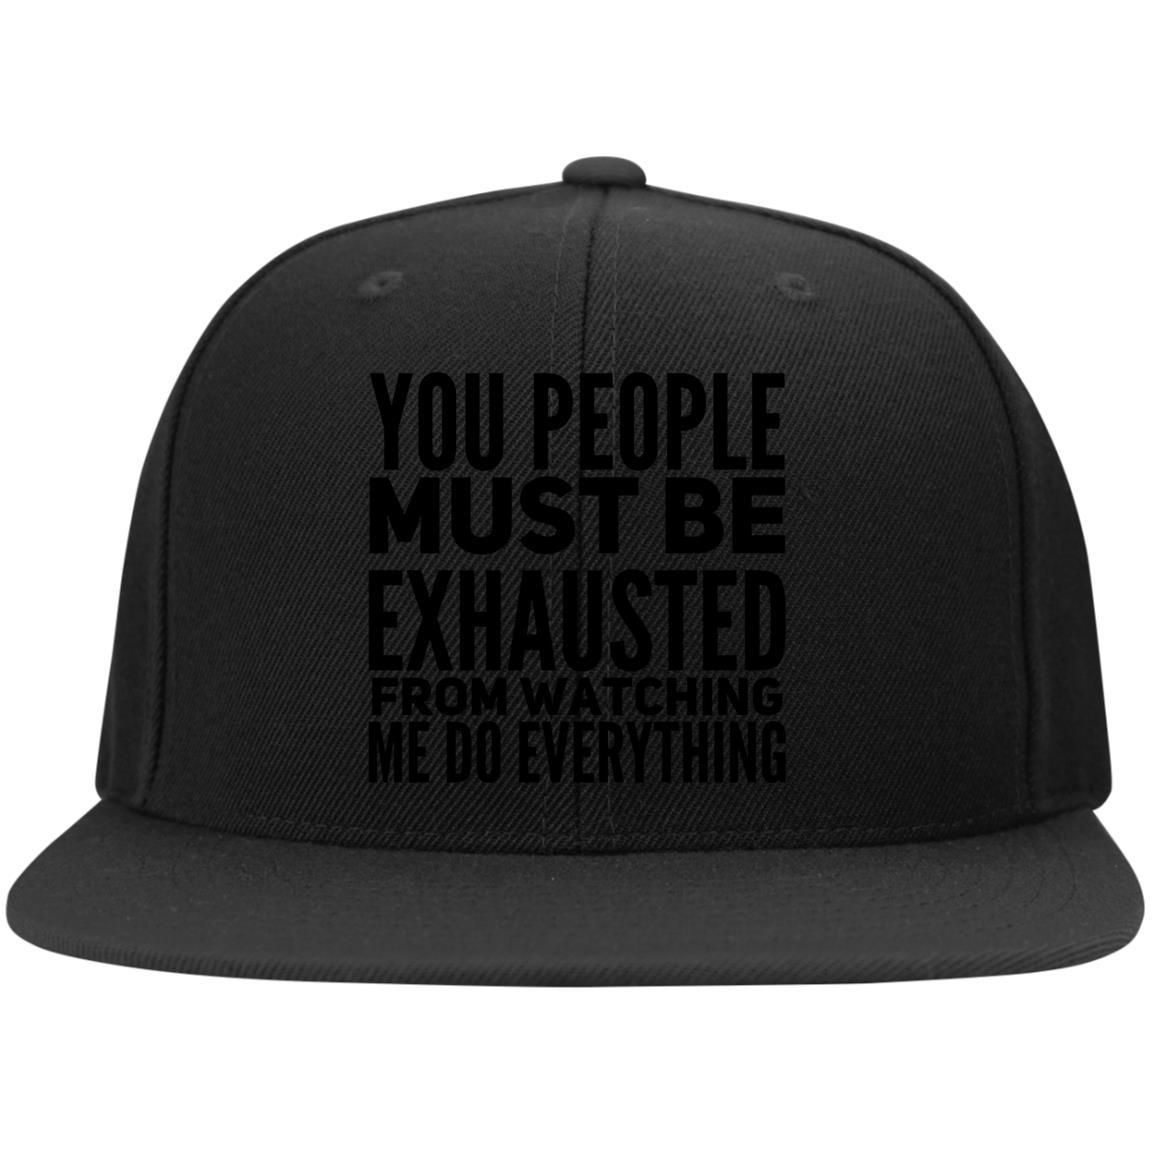 eba28ba4f8e87 you people must be exhausted from watching me do everything Flat Bill  High-Profile Snapback Hat